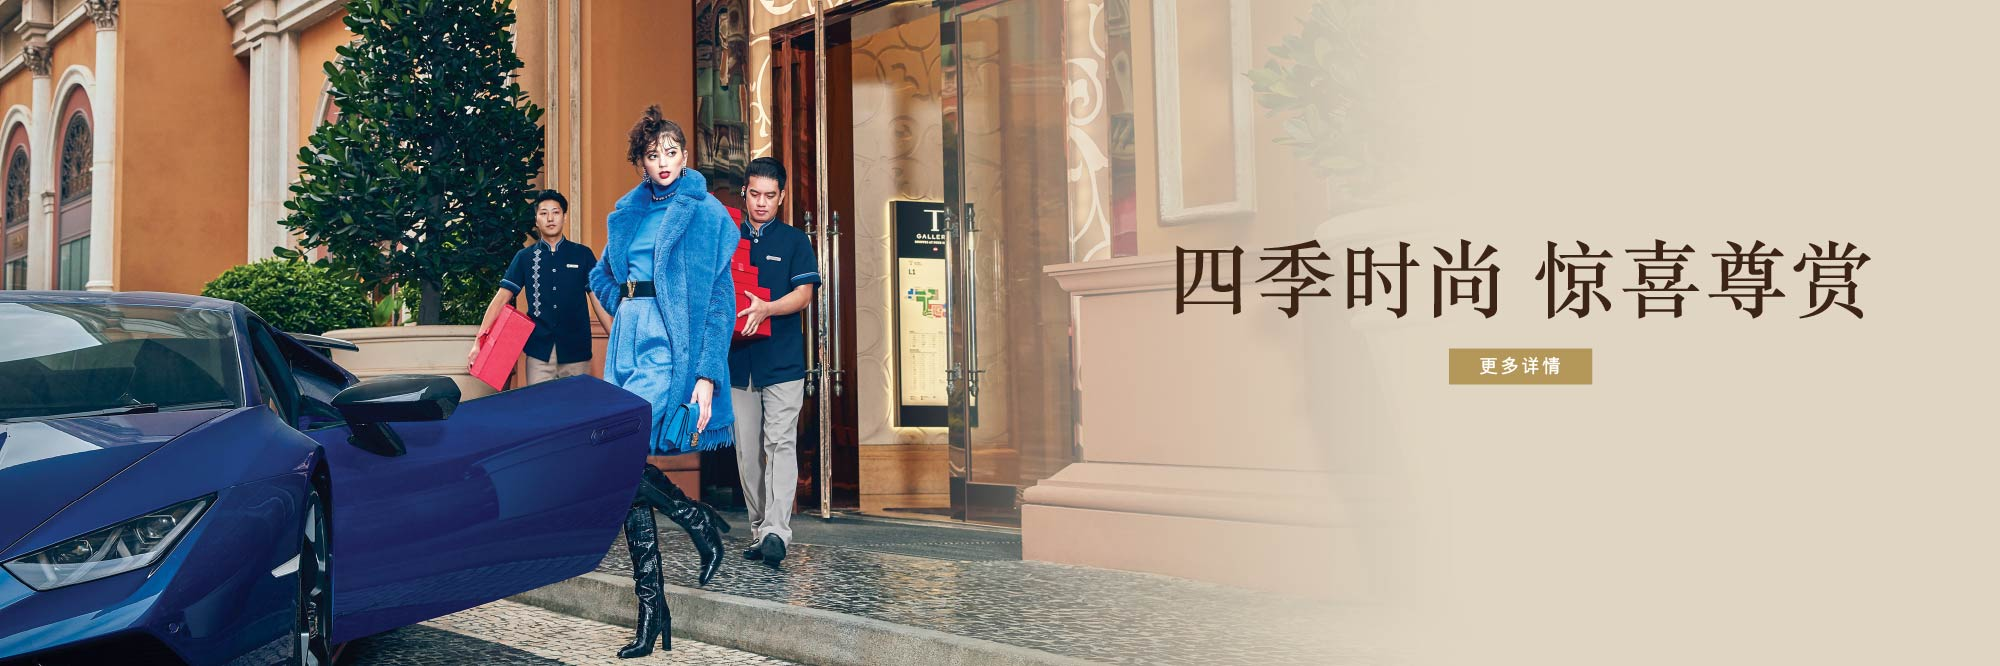 https://www.parisianmacao.com.cn/macau-hotel/promotions-offers/macao-getaway-package.html  https://assets.sandsresortsmacao.cn/content/sandsresortsmacao/macau-offers/macao-getaway-package/pm_macao-getaway-package_cta-banner_2000x666_sc.jpg